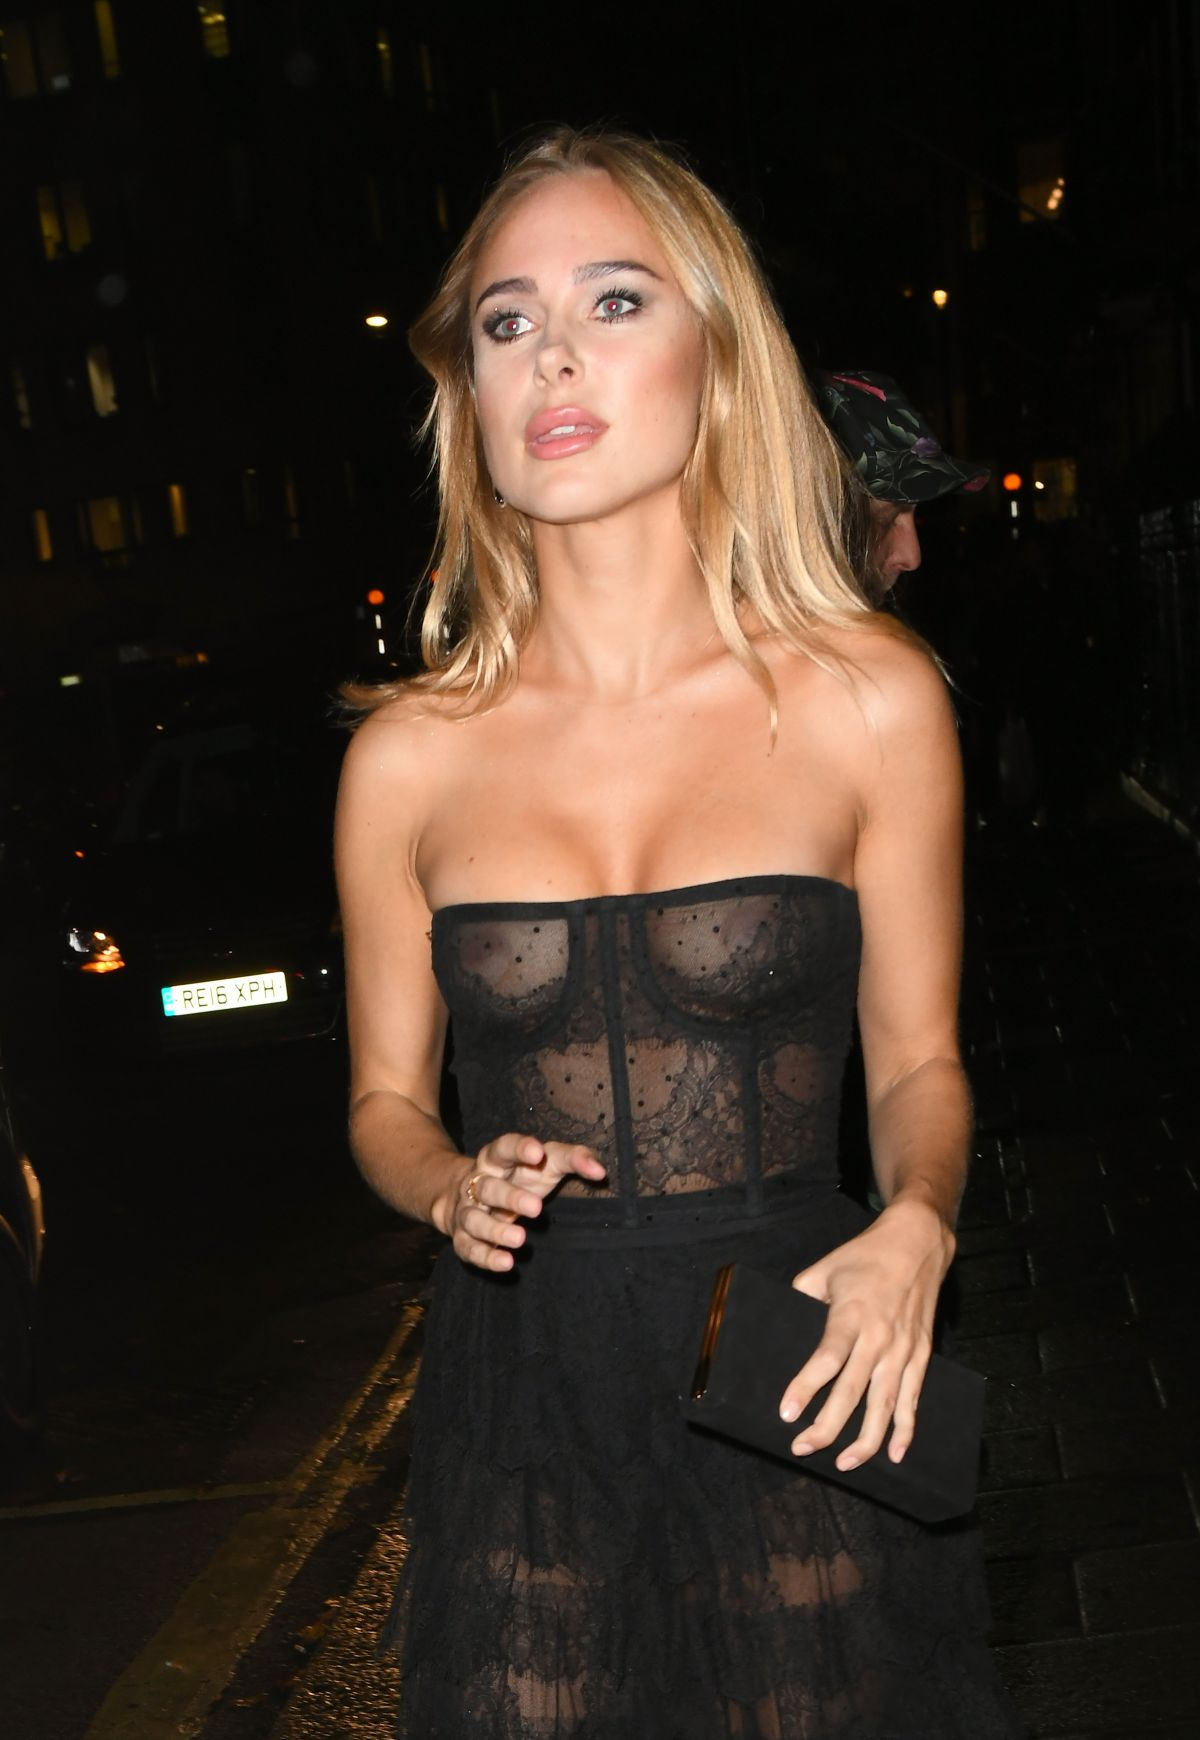 85064047_kimberley-garner-in-london-20181011-2.jpg